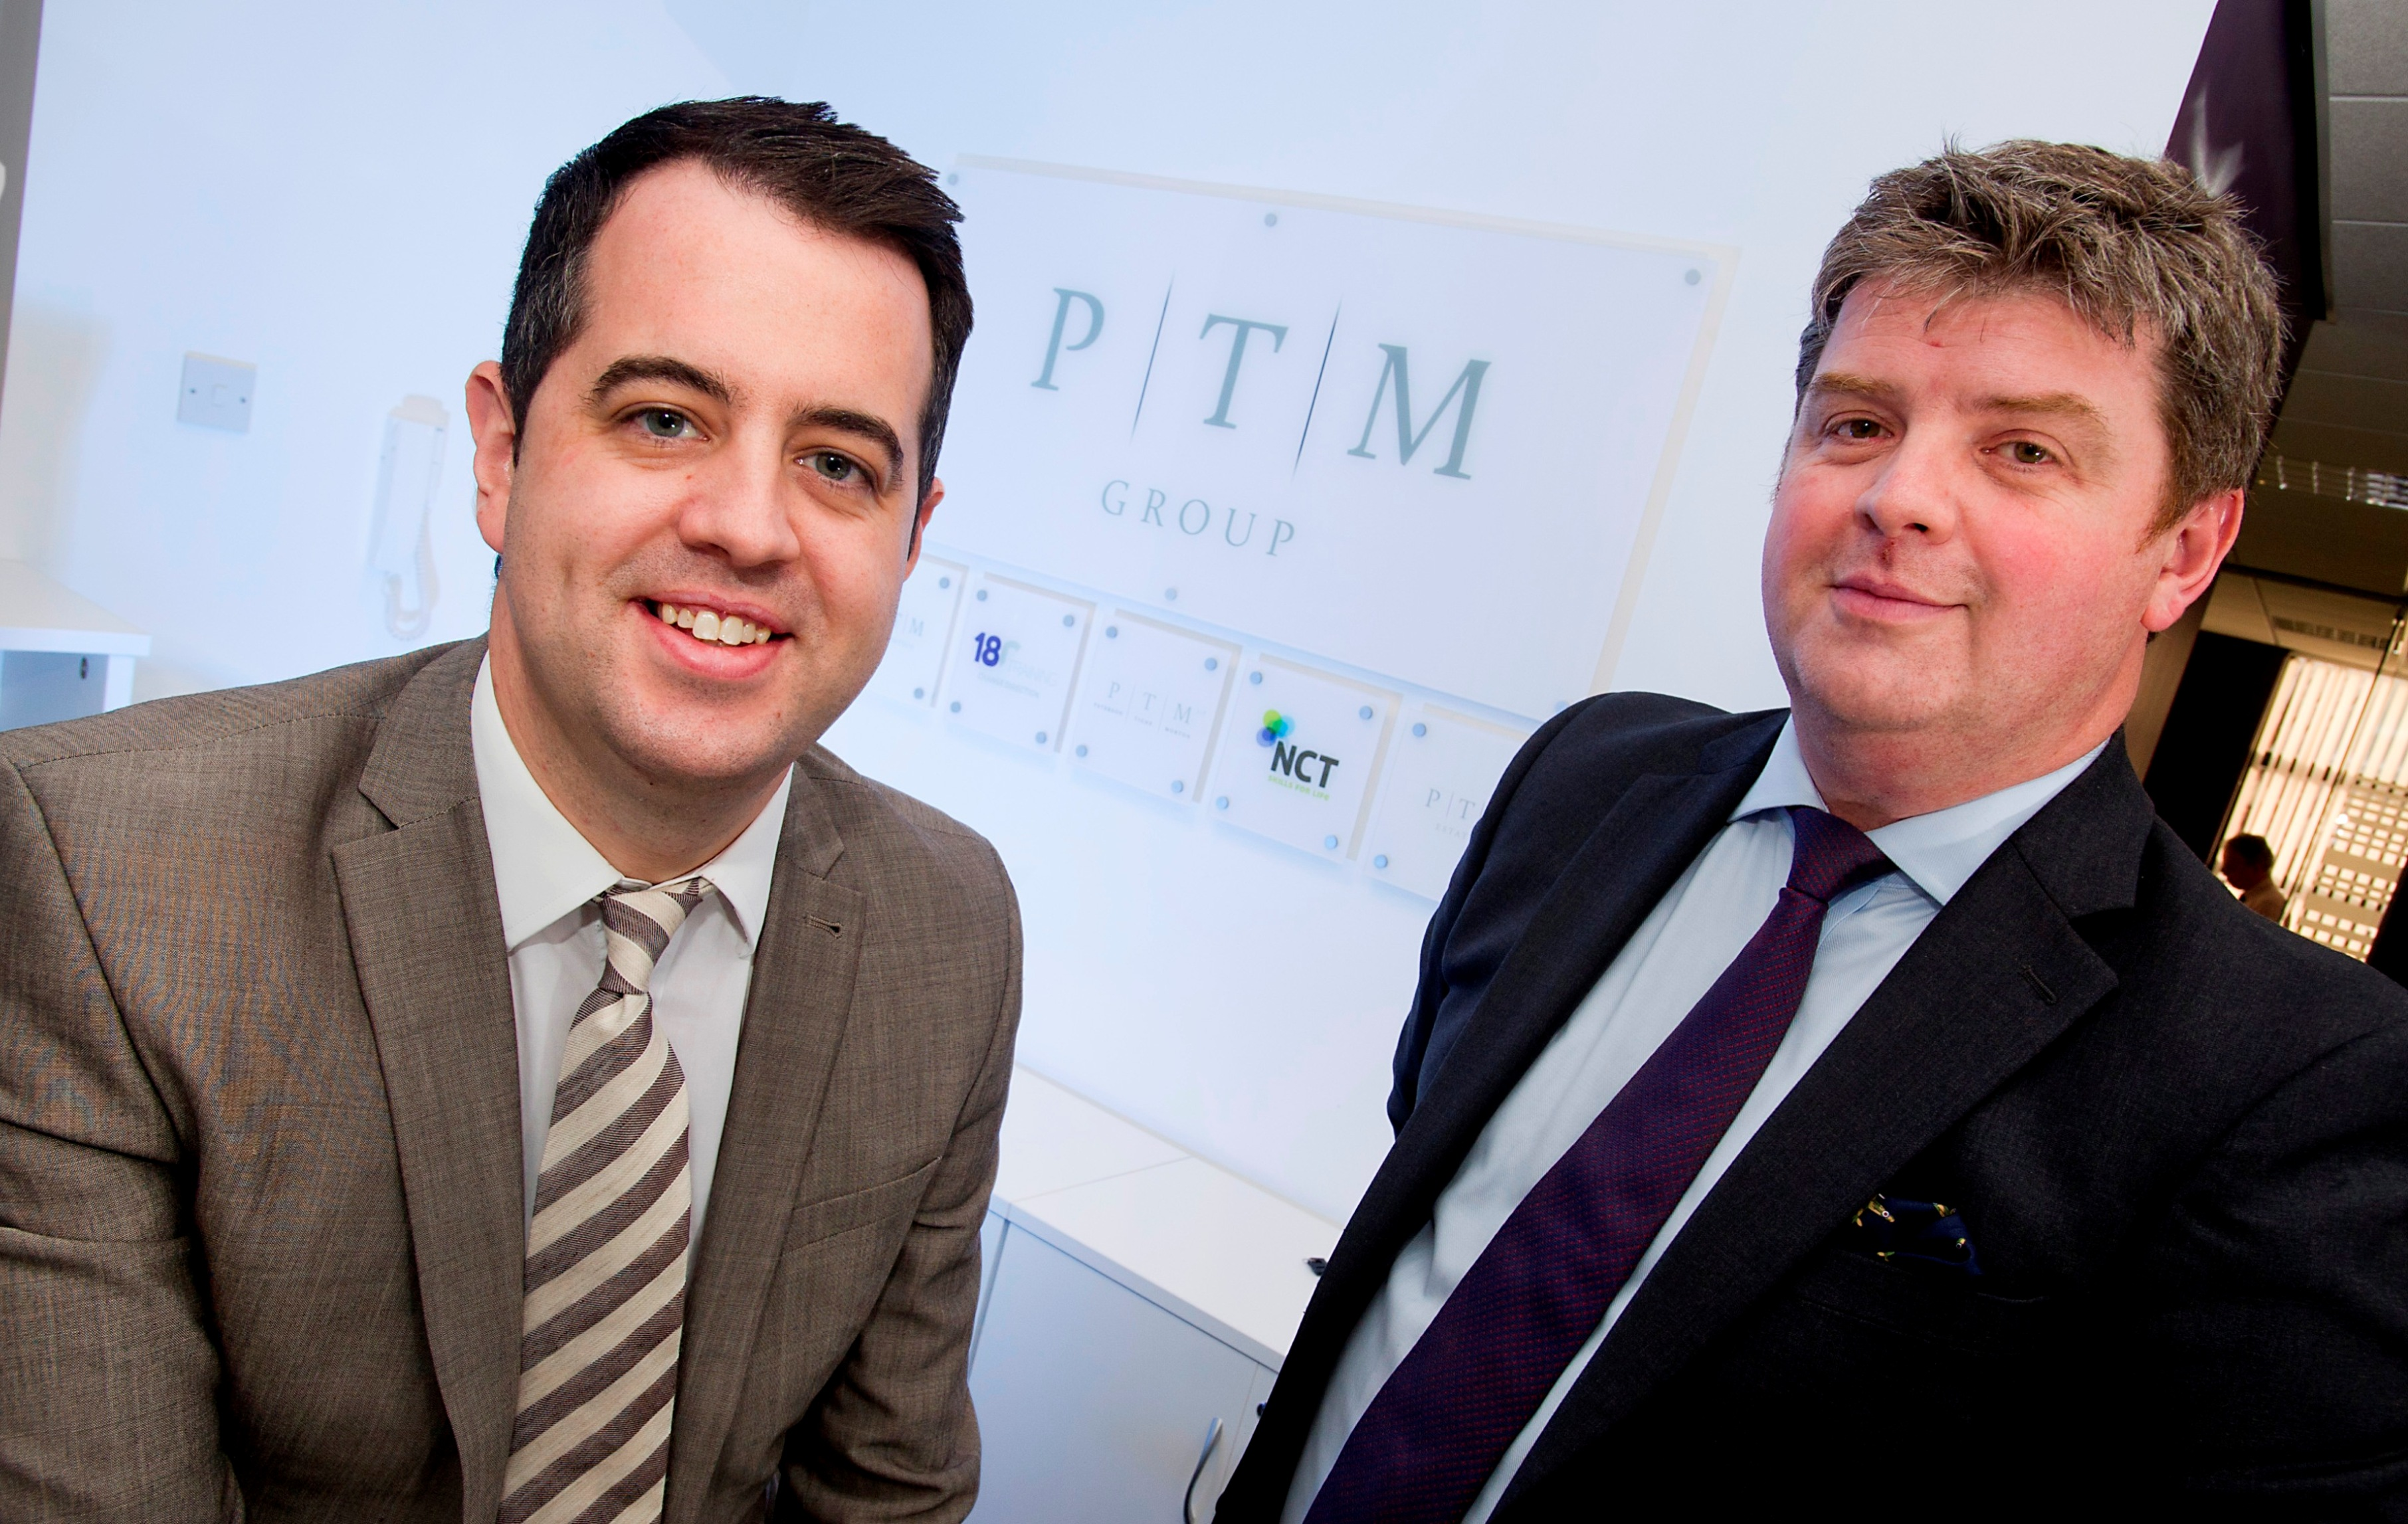 PTM Group Planning Expansion with Growth Fund Support